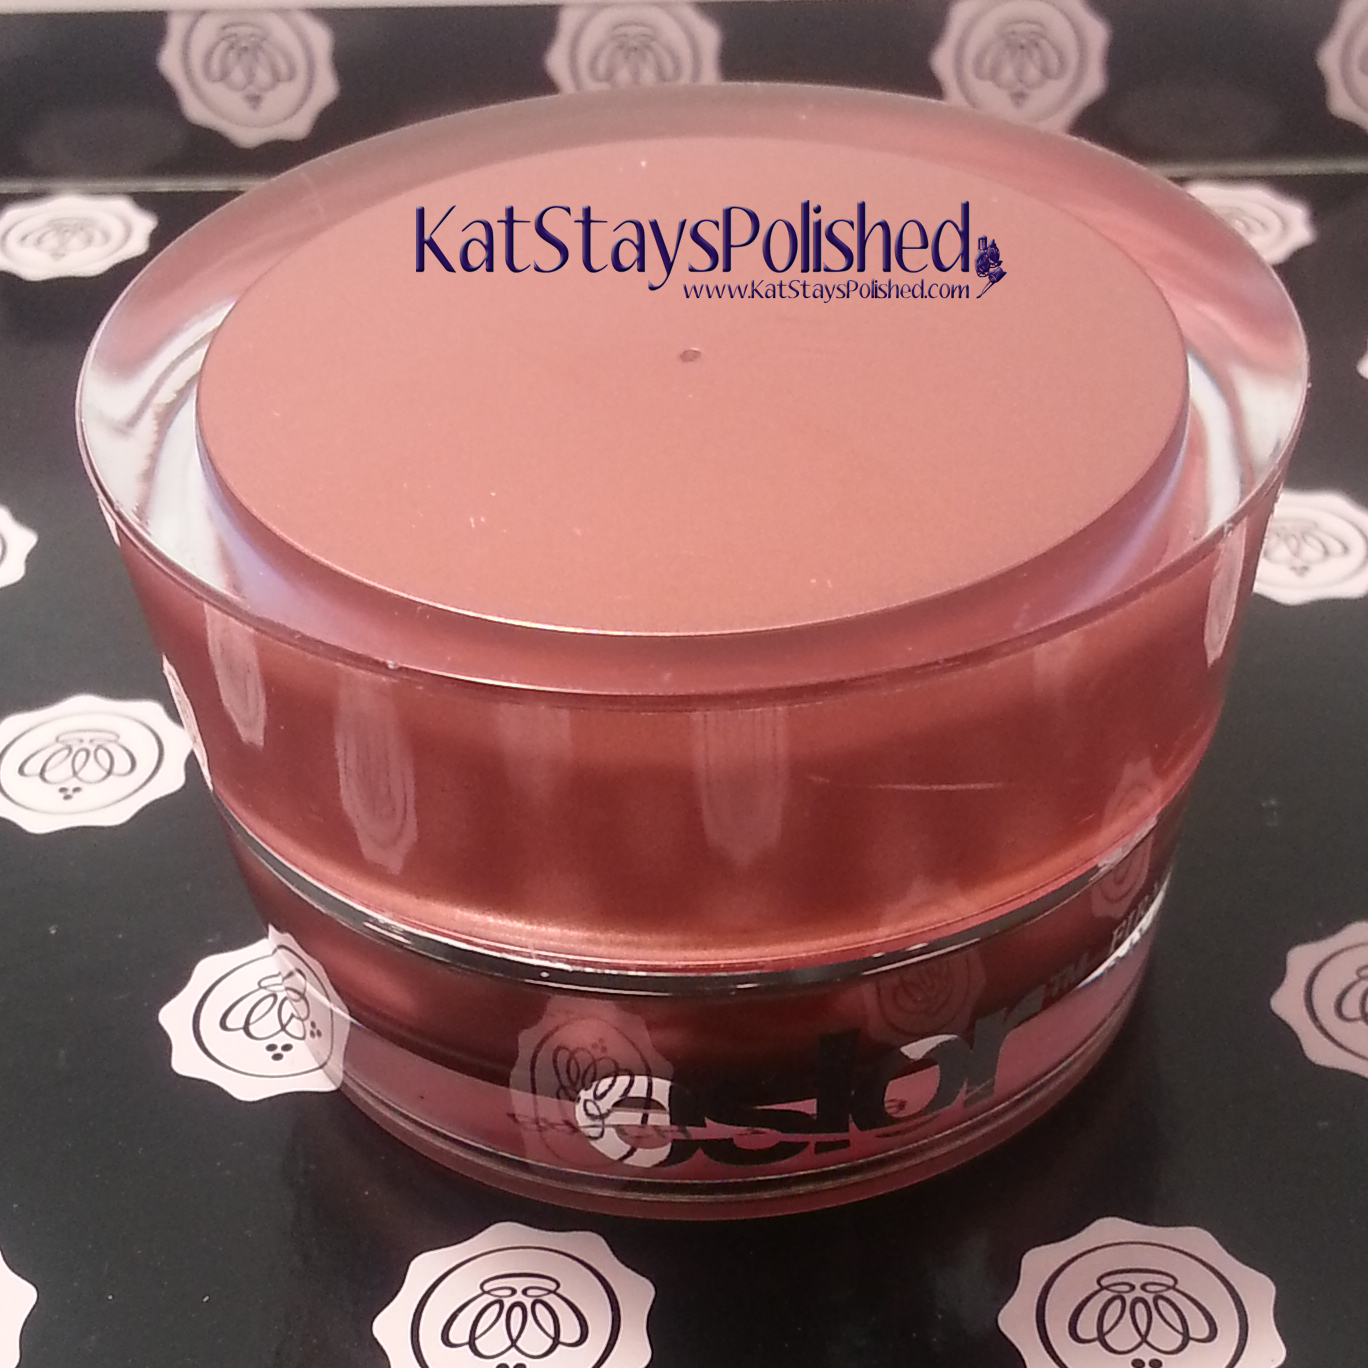 Glossybox - August 2014 - Eslor Firming Collagen Day Cream | Kat Stays Polished